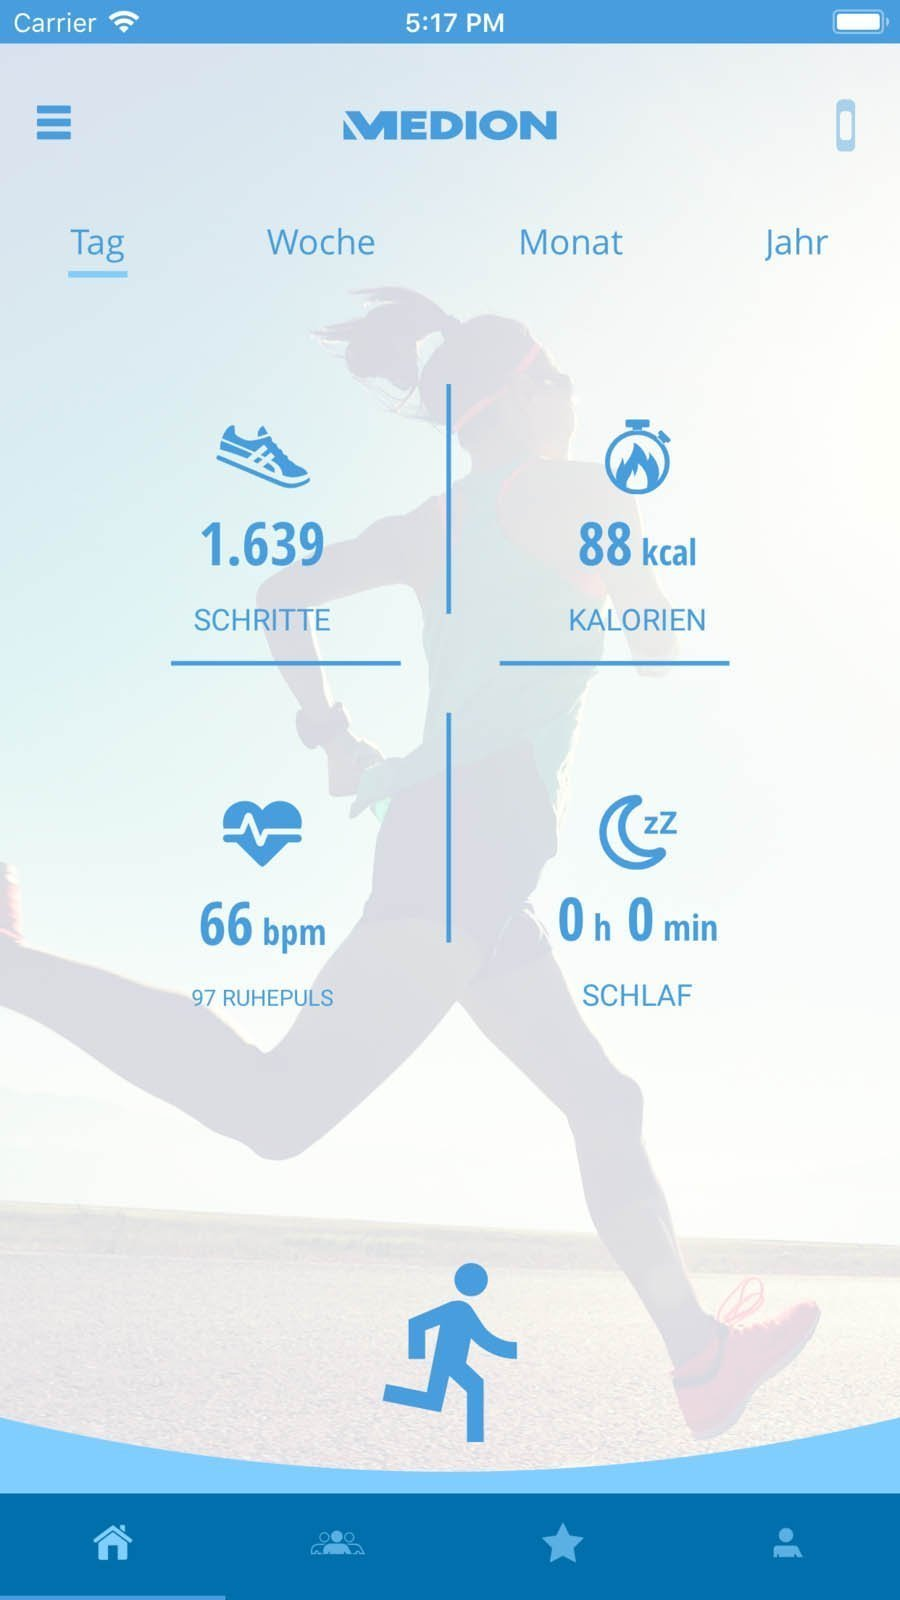 MEDION Fitness App Dashboard